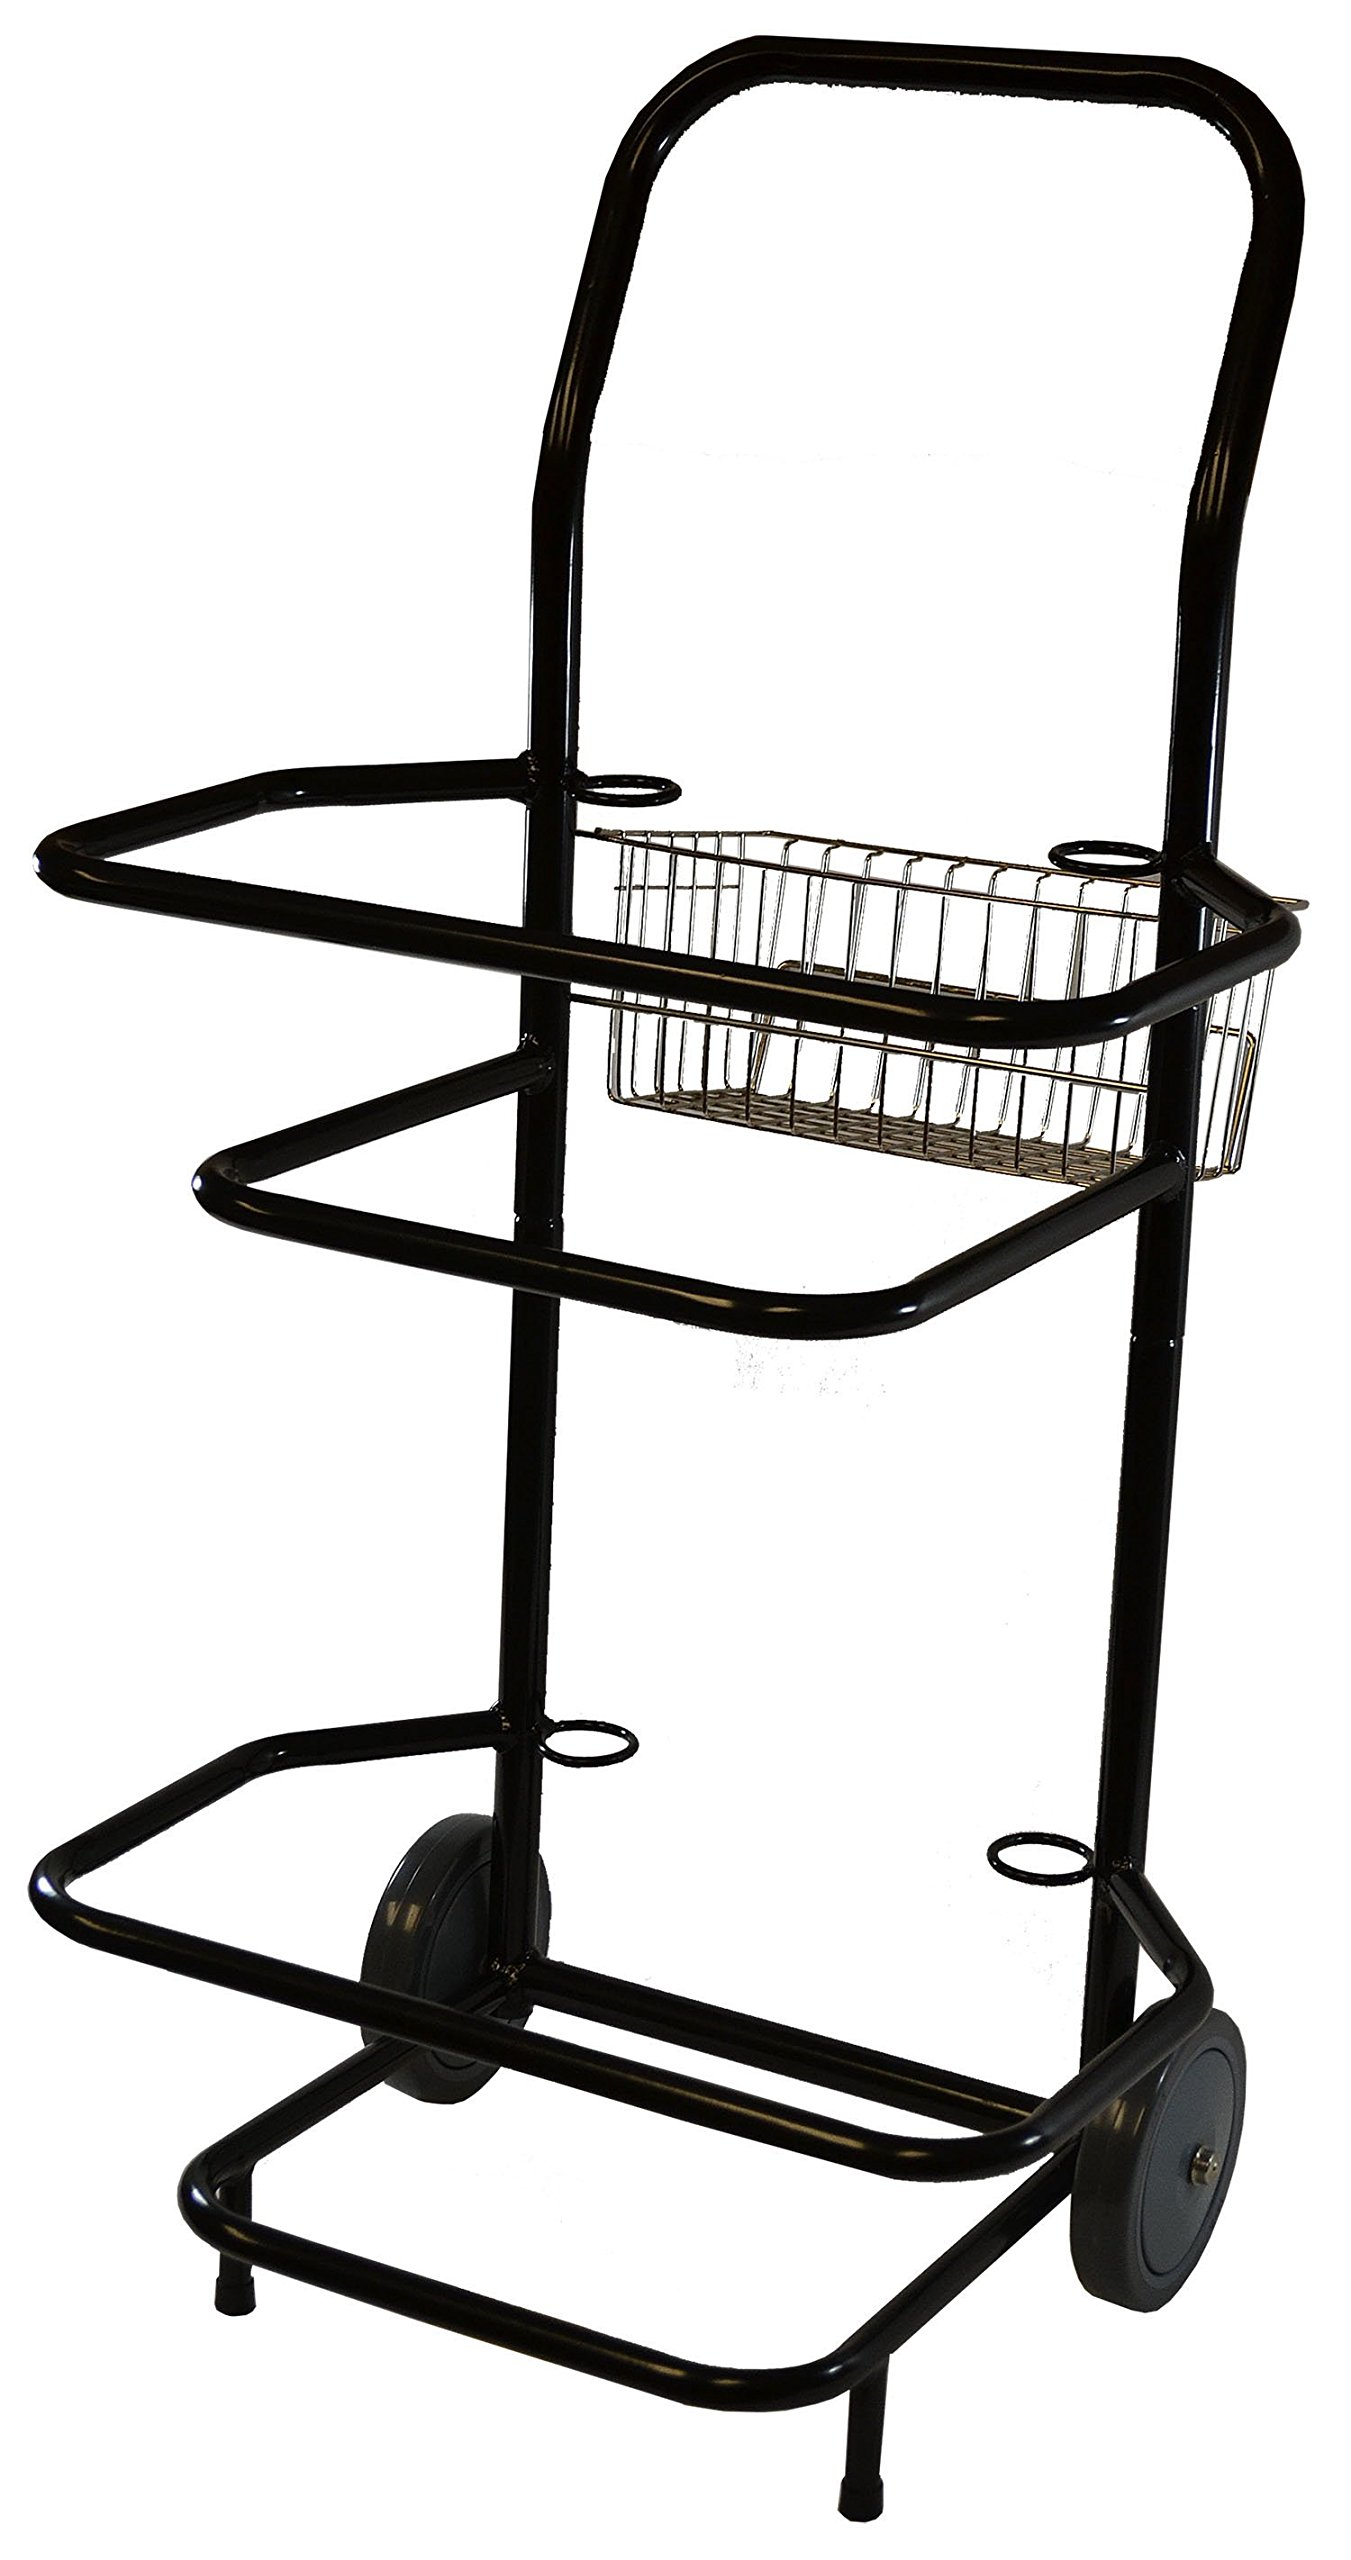 Golden Star T2216 Janitor Microfiber Trolley, 2 Wheel